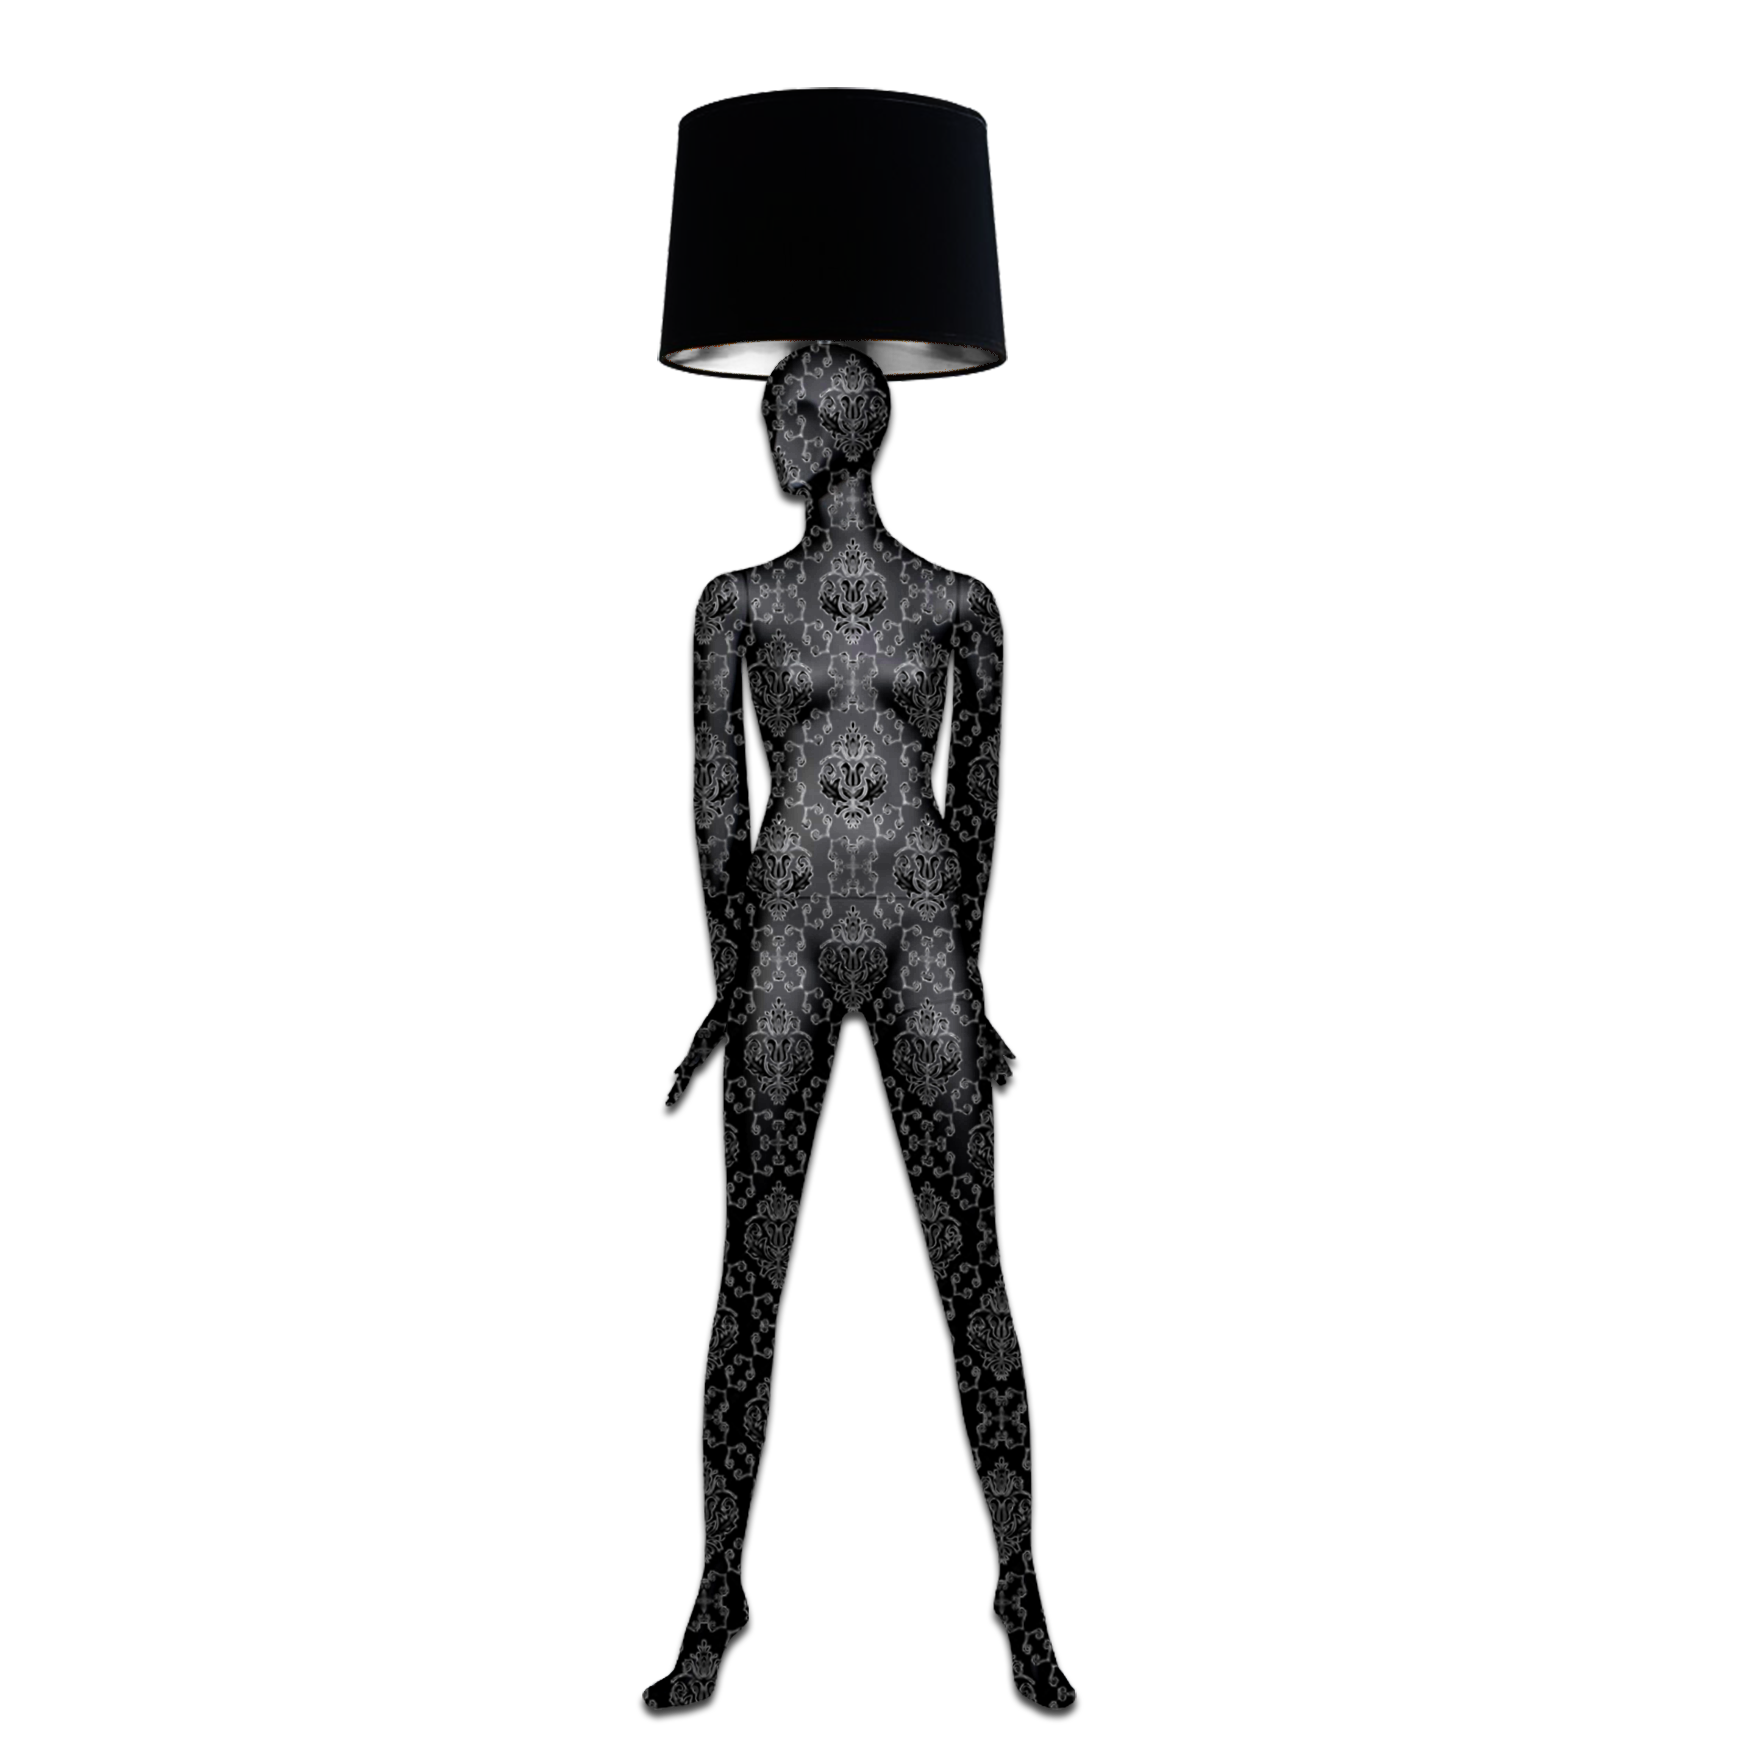 Mannequin Floor Lamp_Alien 1 Baroque